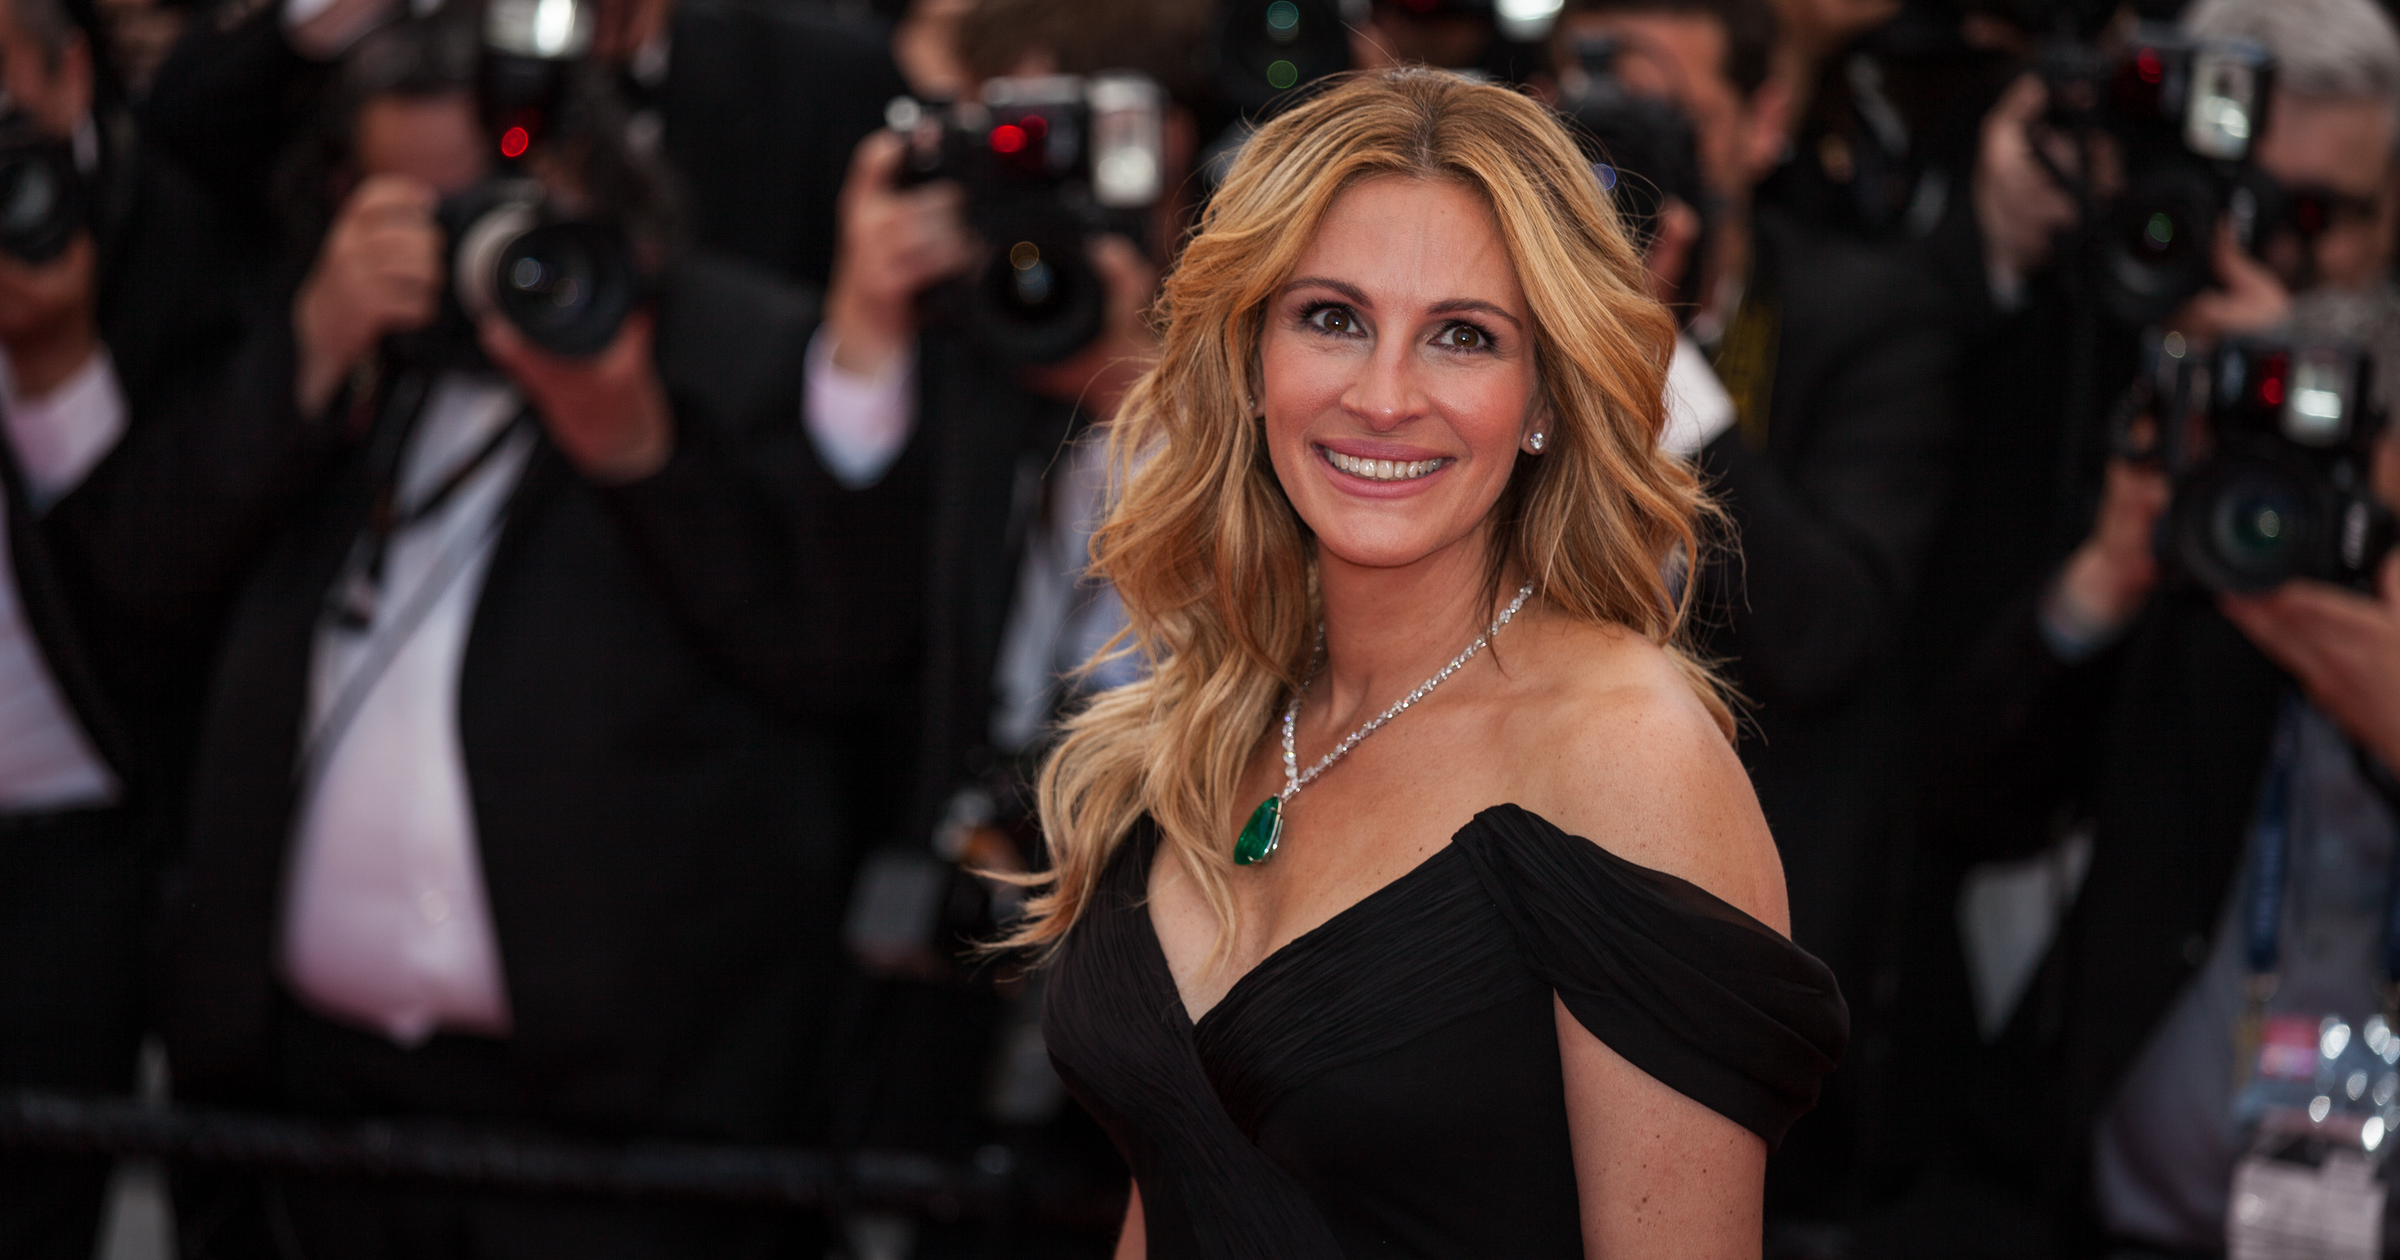 Julia Roberts at film premiere in Cannes